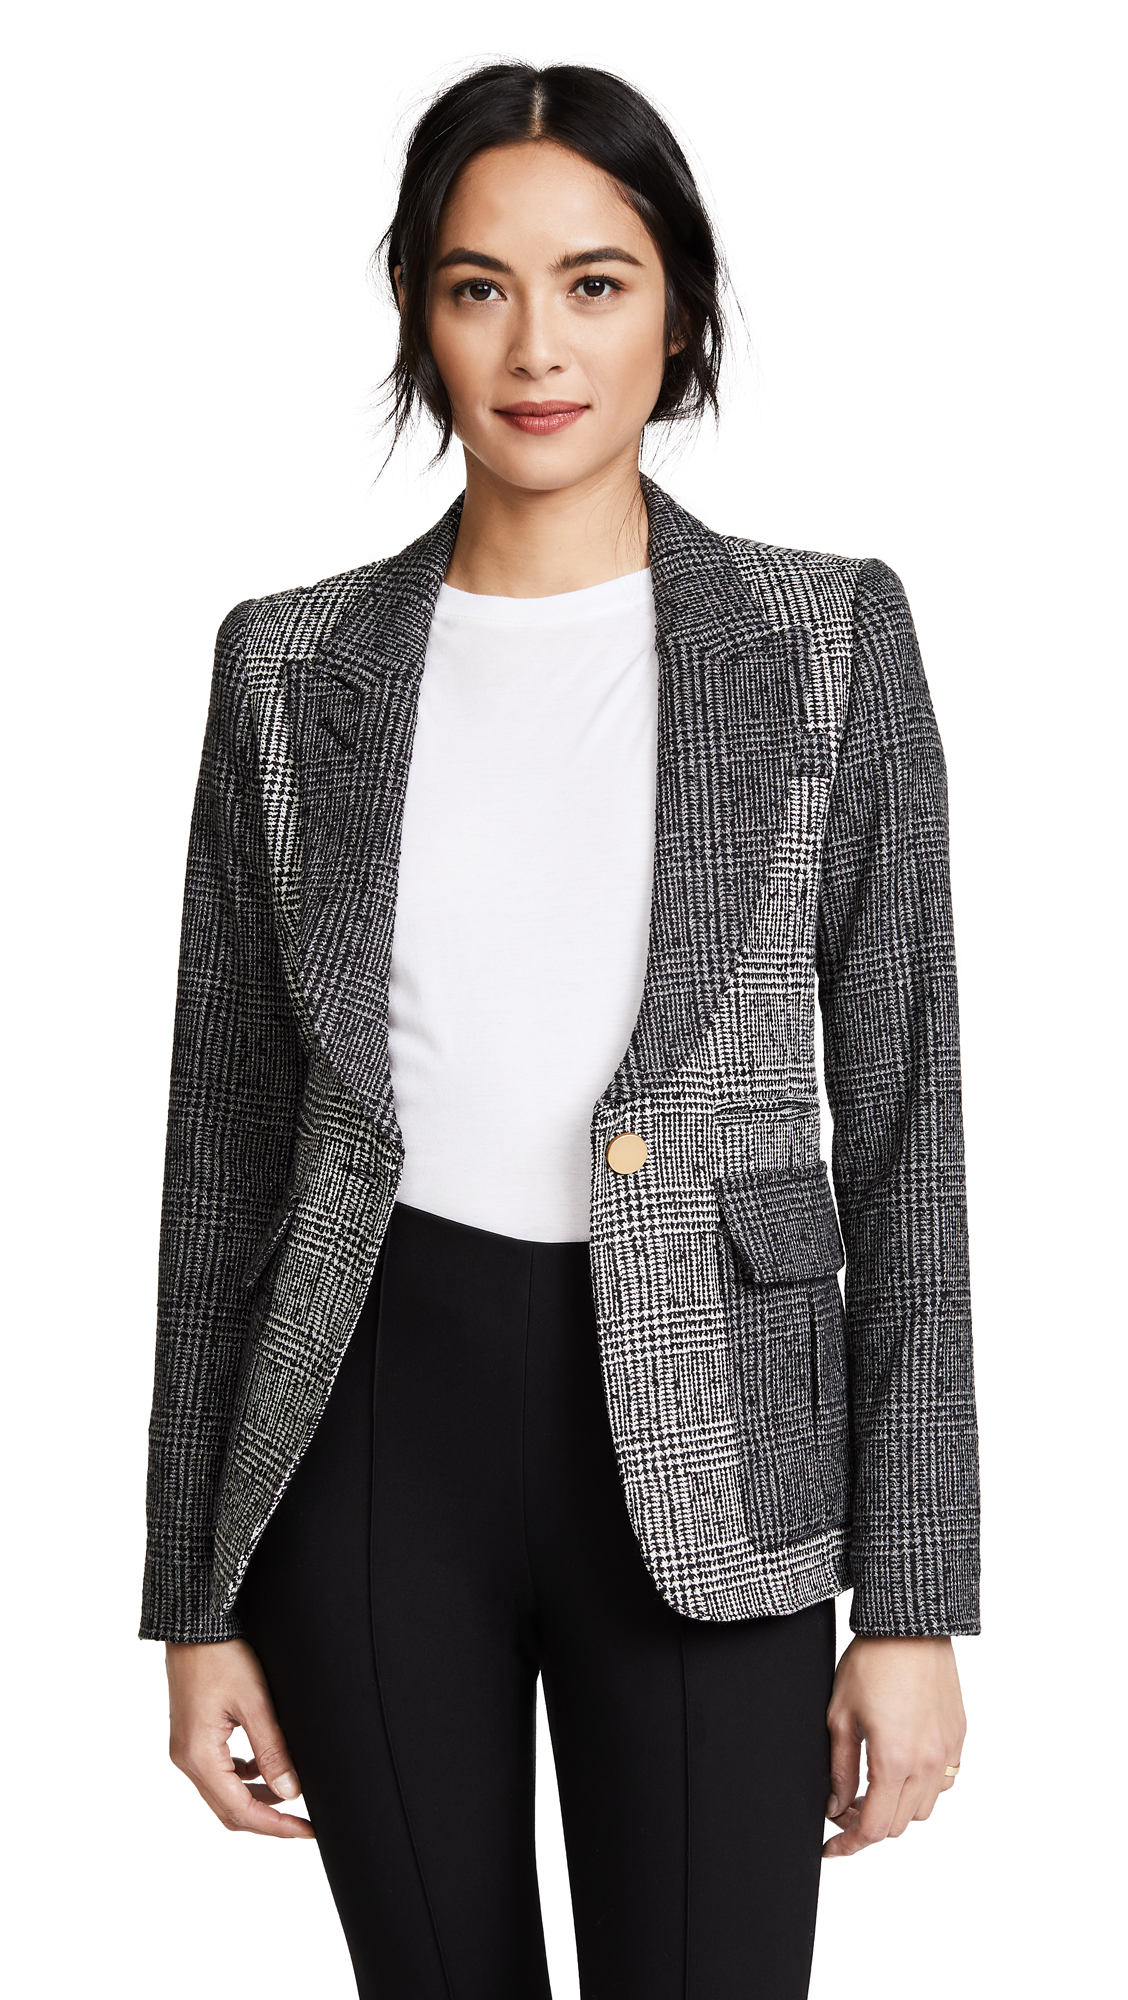 SMYTHE Mixed Plaid Peaked Lapel Blazer - Tonal Grey Glen Check